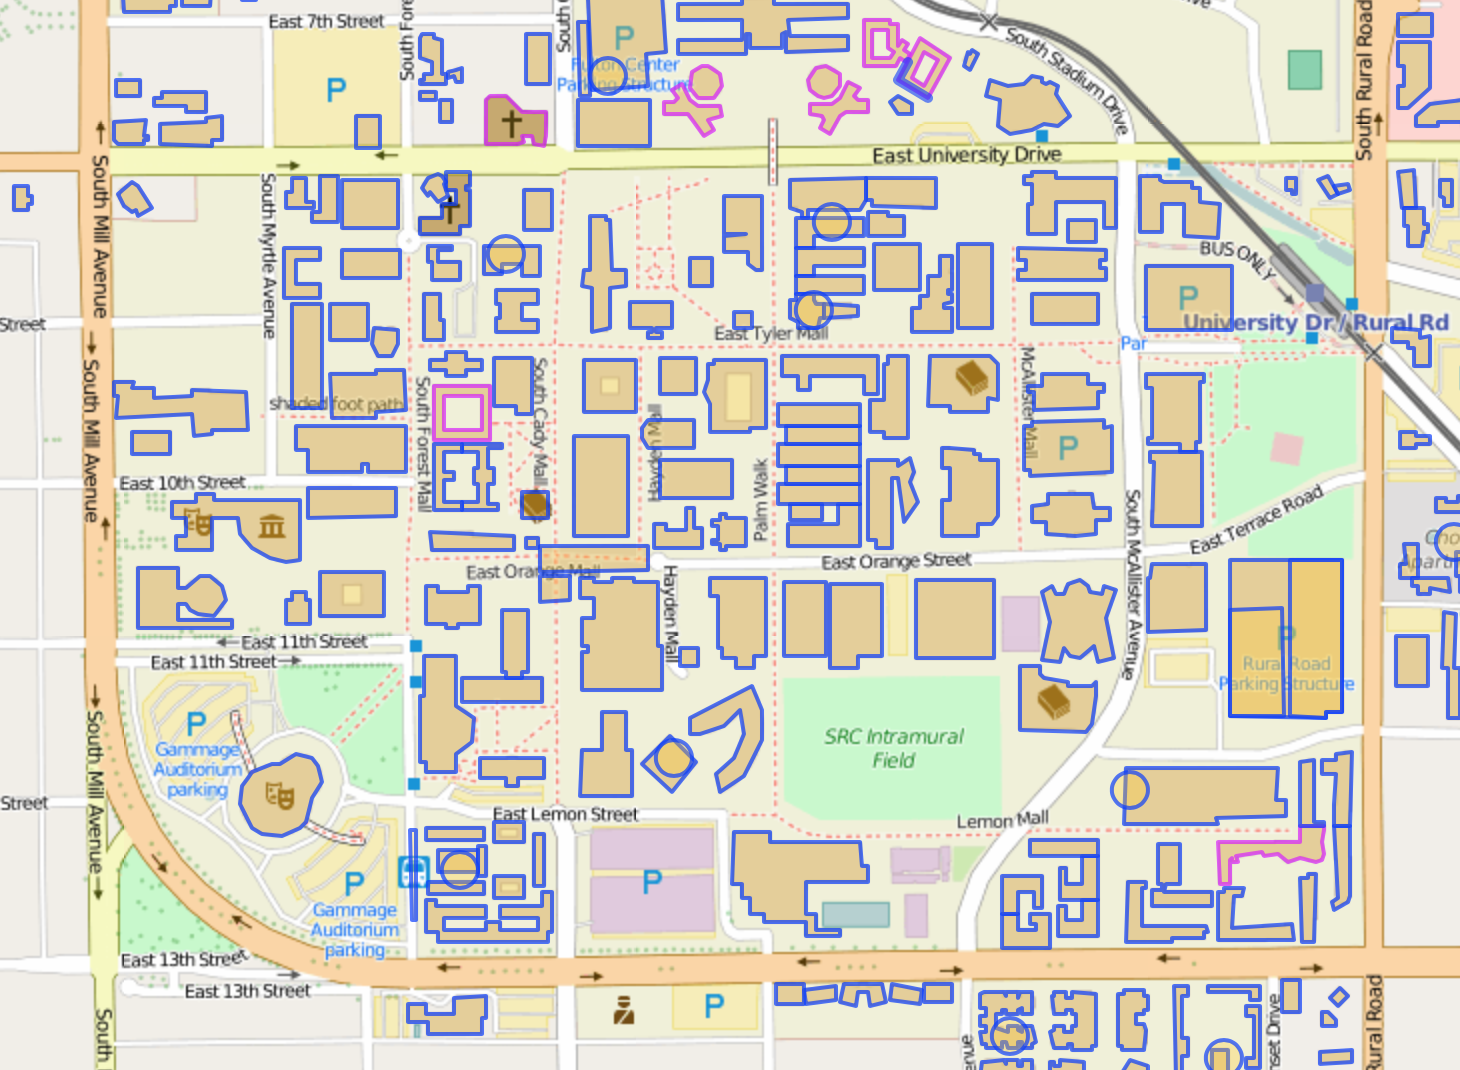 Campus Map Asu.Targeted Editing Campus Mapping Mapzen